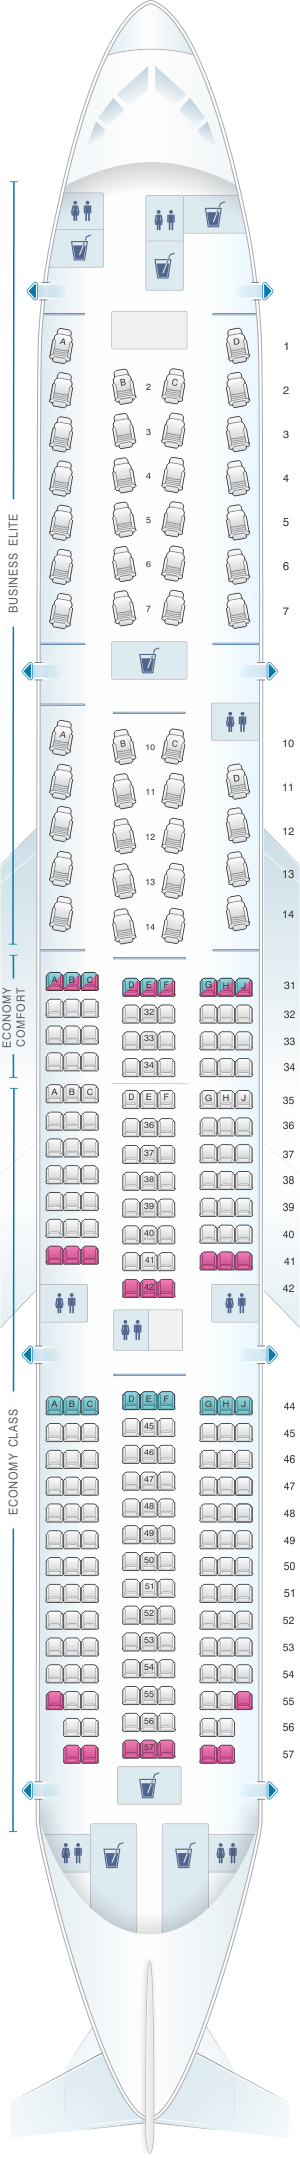 Seat map for Delta Airlines Boeing B777 200LR